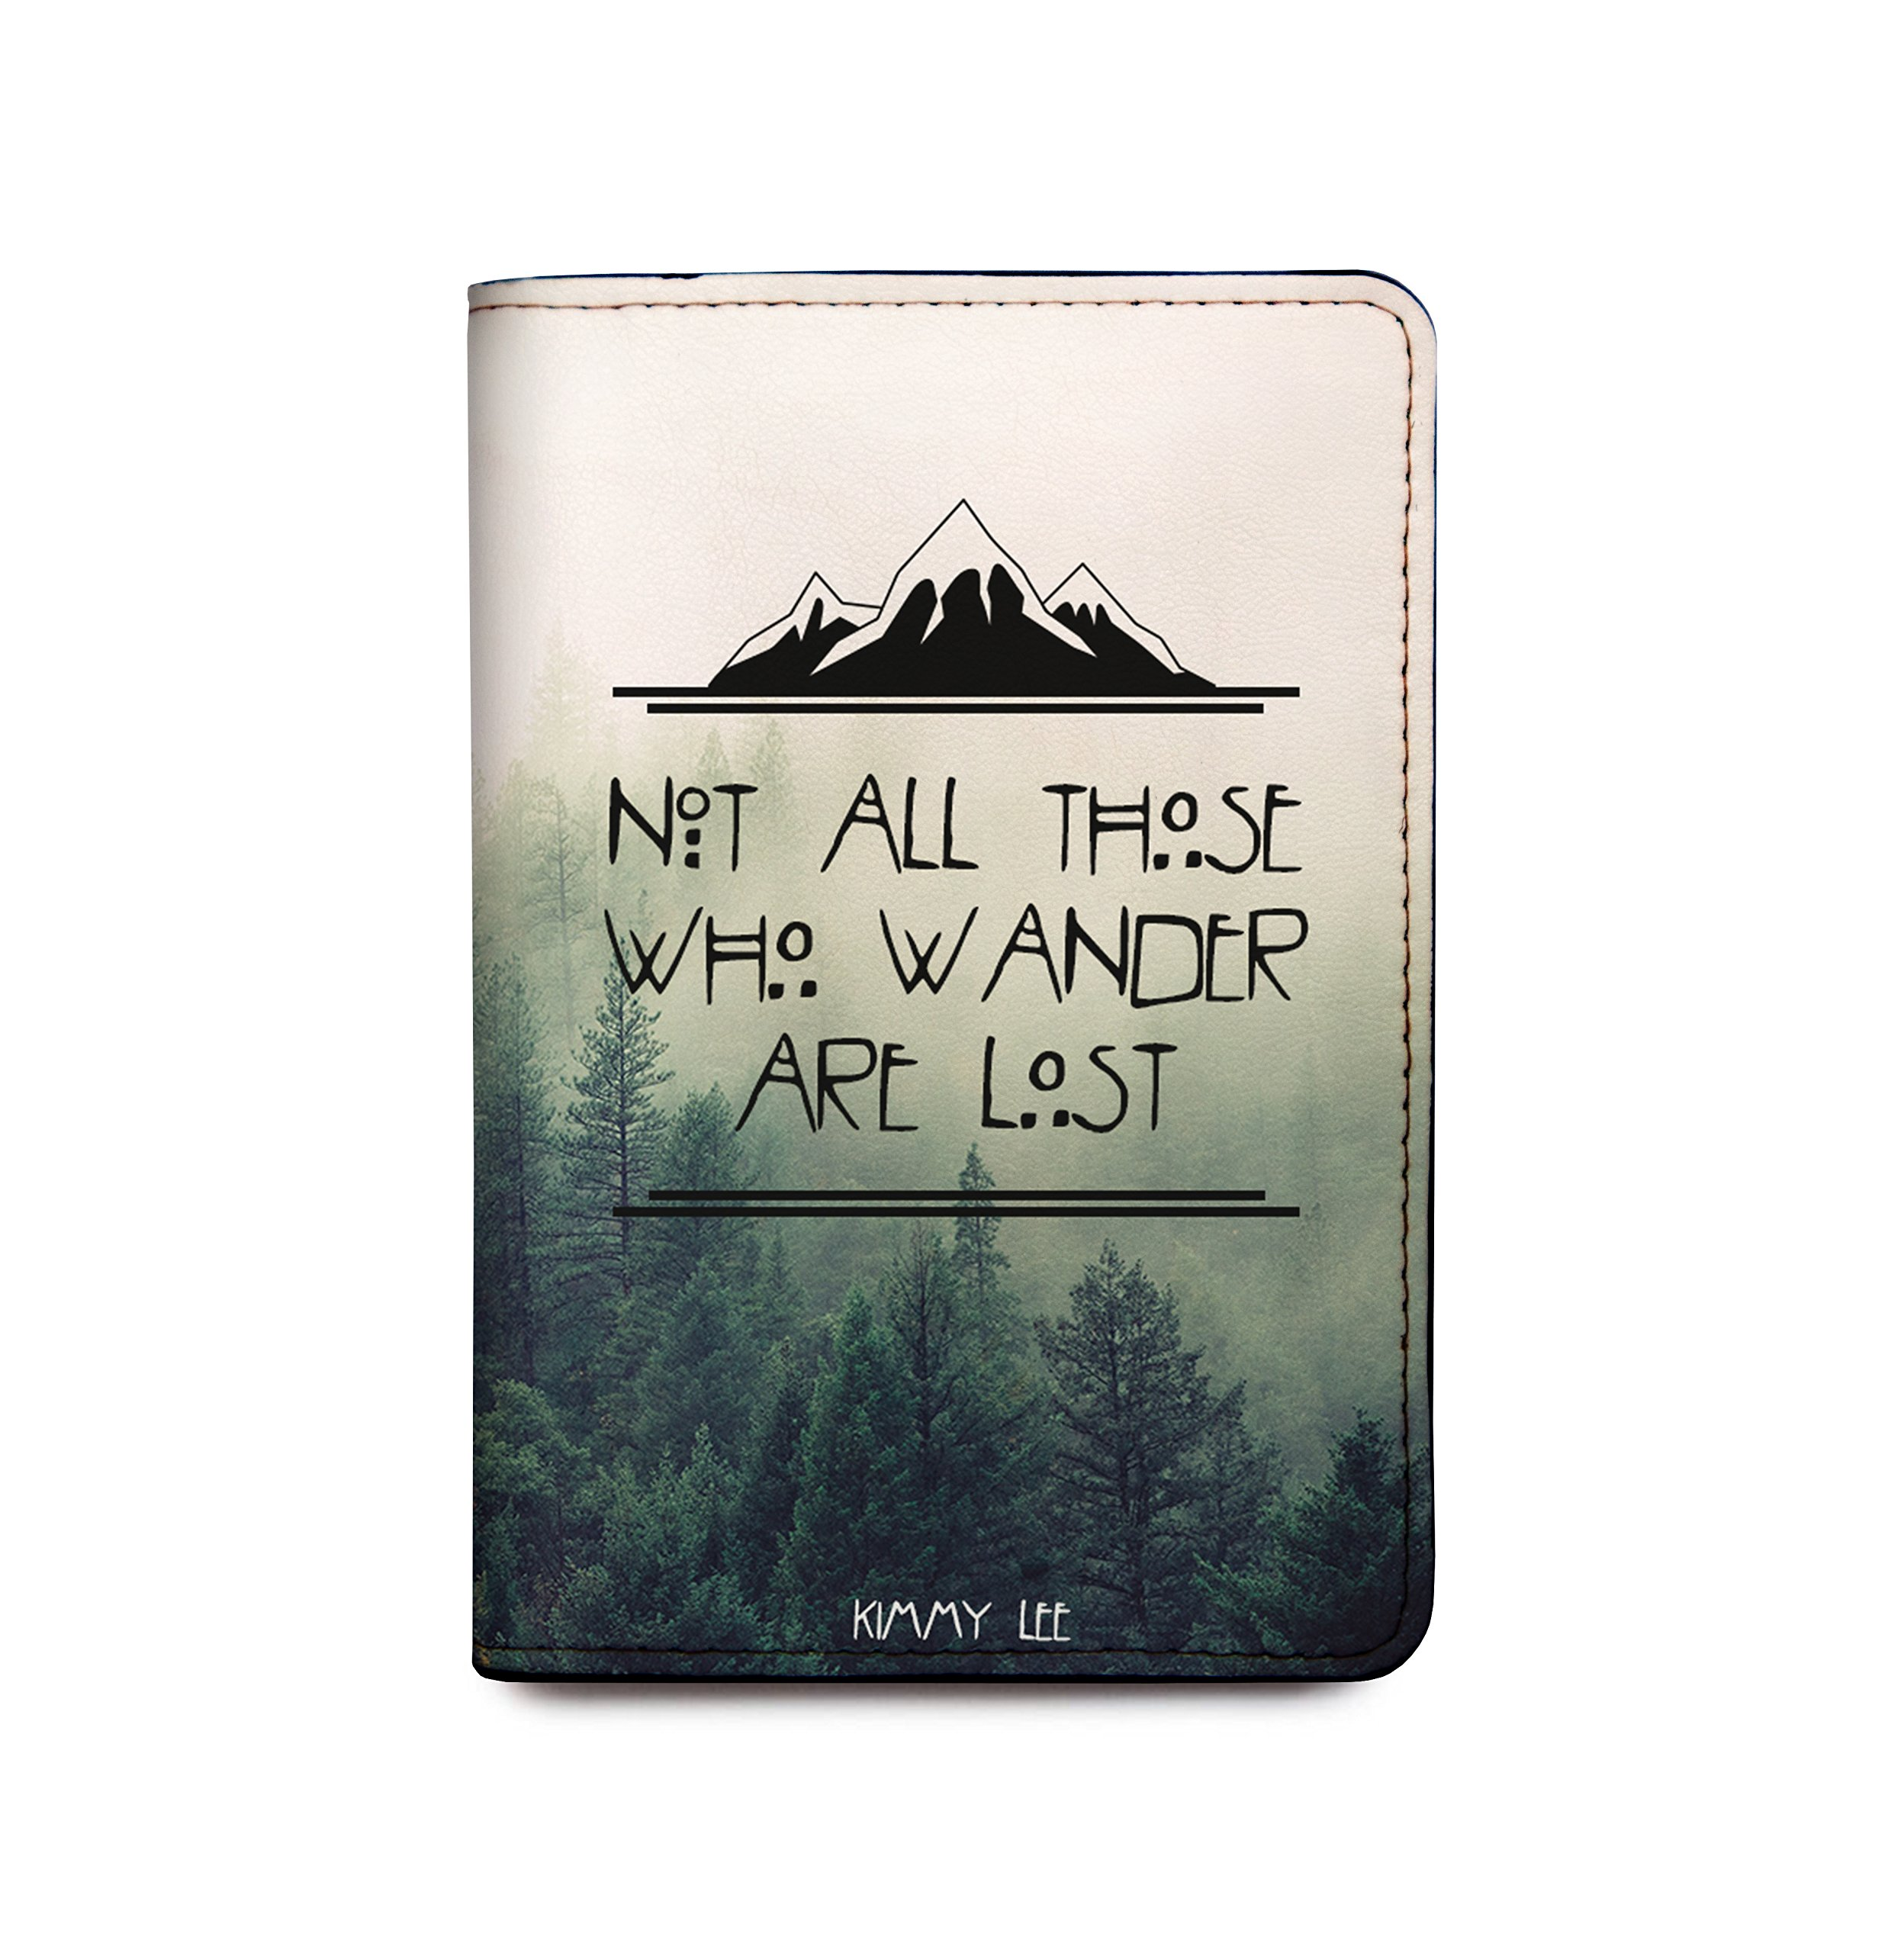 Personalized Leather Passport Cover Wallet - Not All Those Who Wander Are Lost